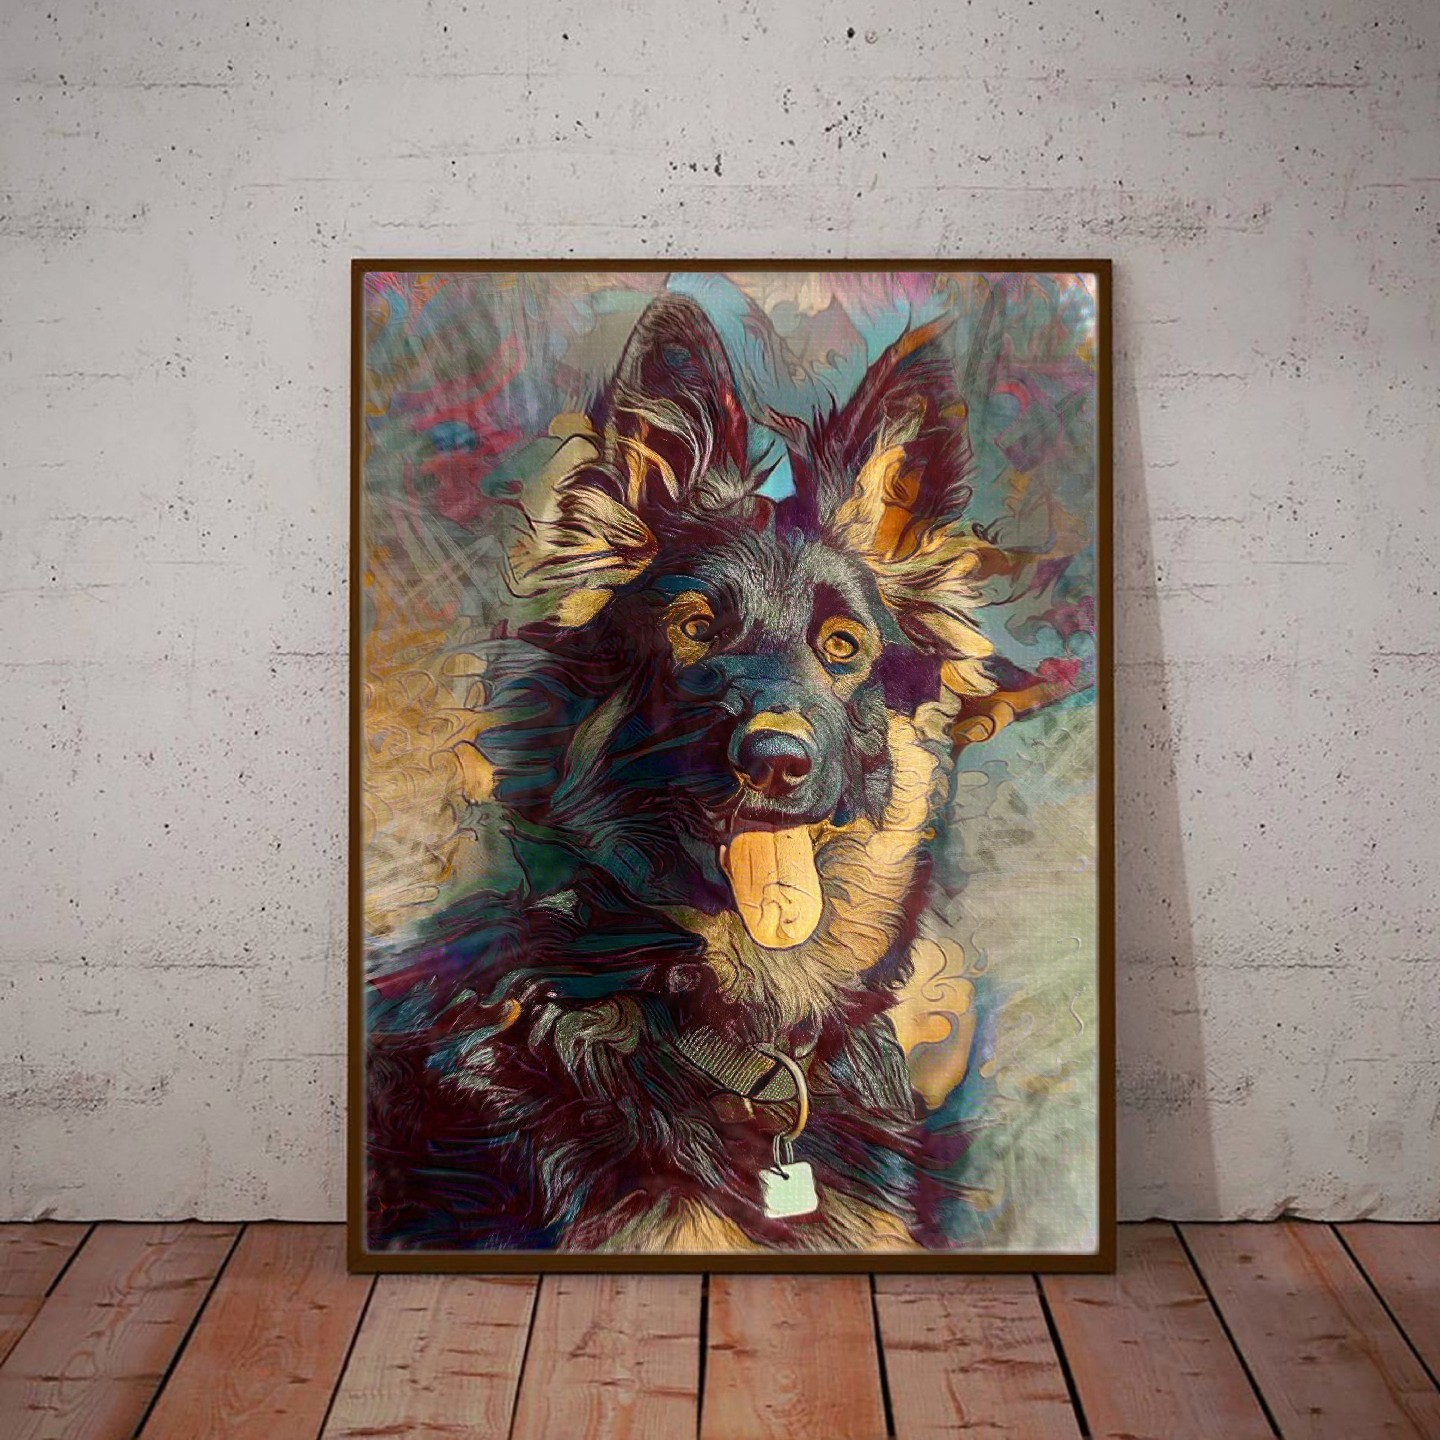 The Significance - One of a kind pet portraits made to order